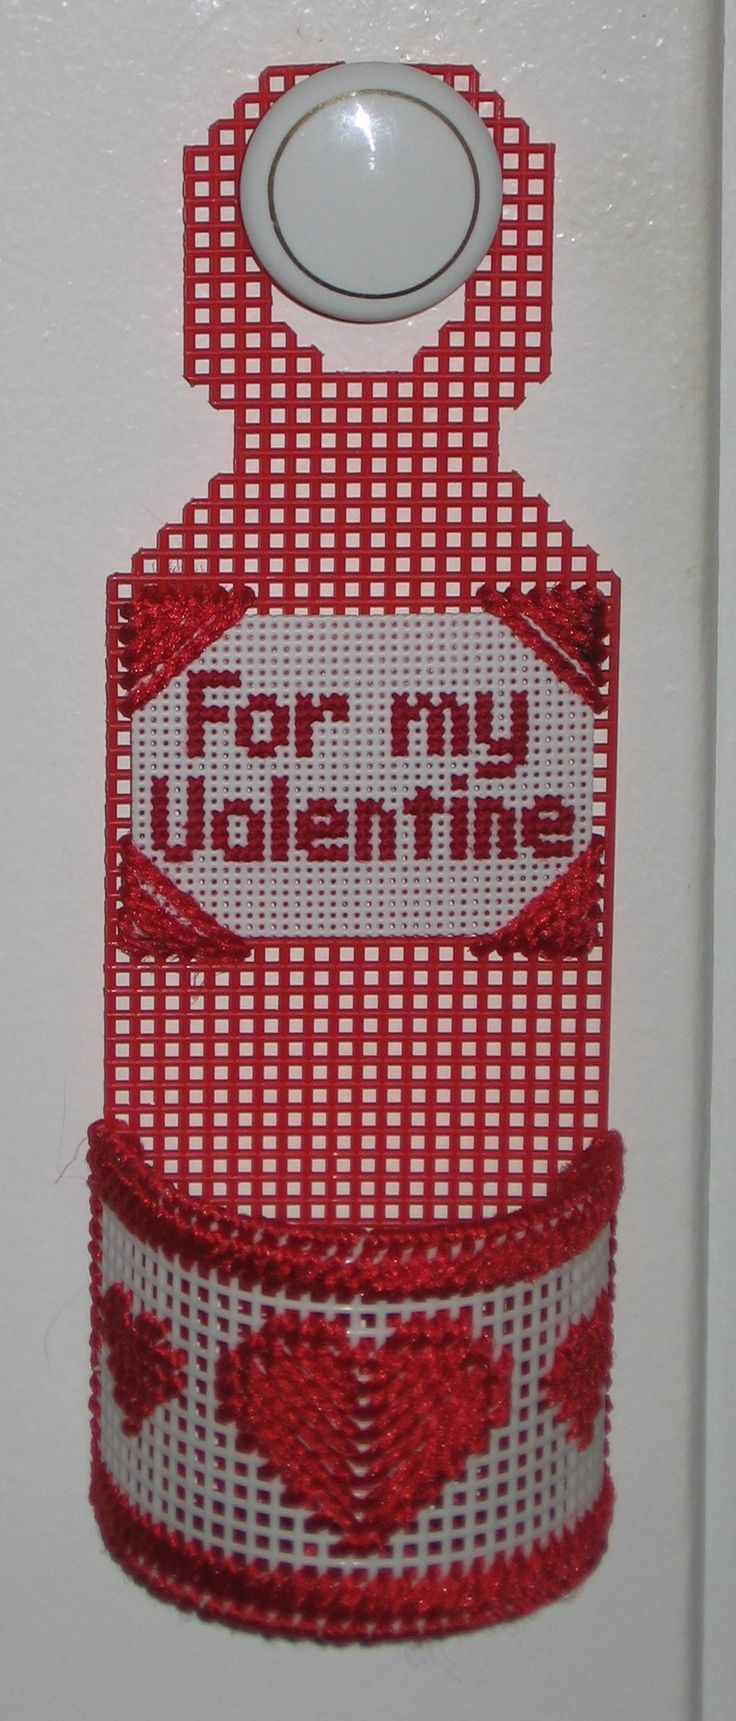 Door Knob Hanger For Valentines Day Made With Plastic